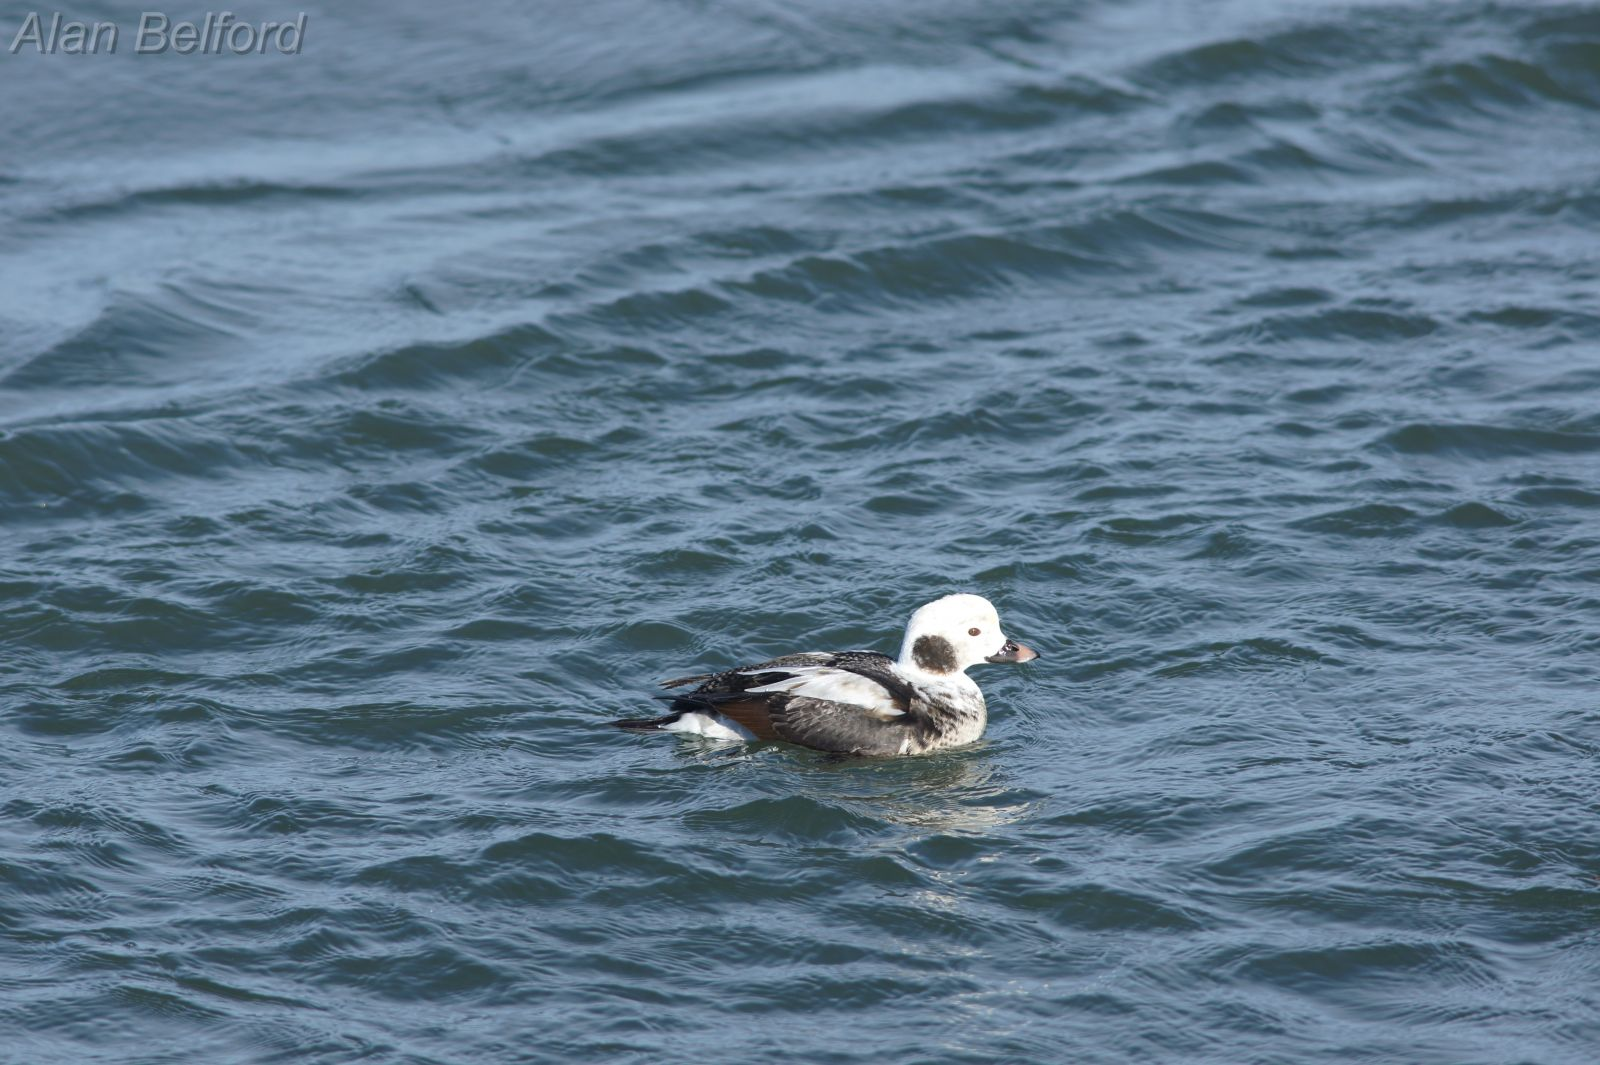 Uncommon species like Long-tailed Ducks can also be found during fall migration.